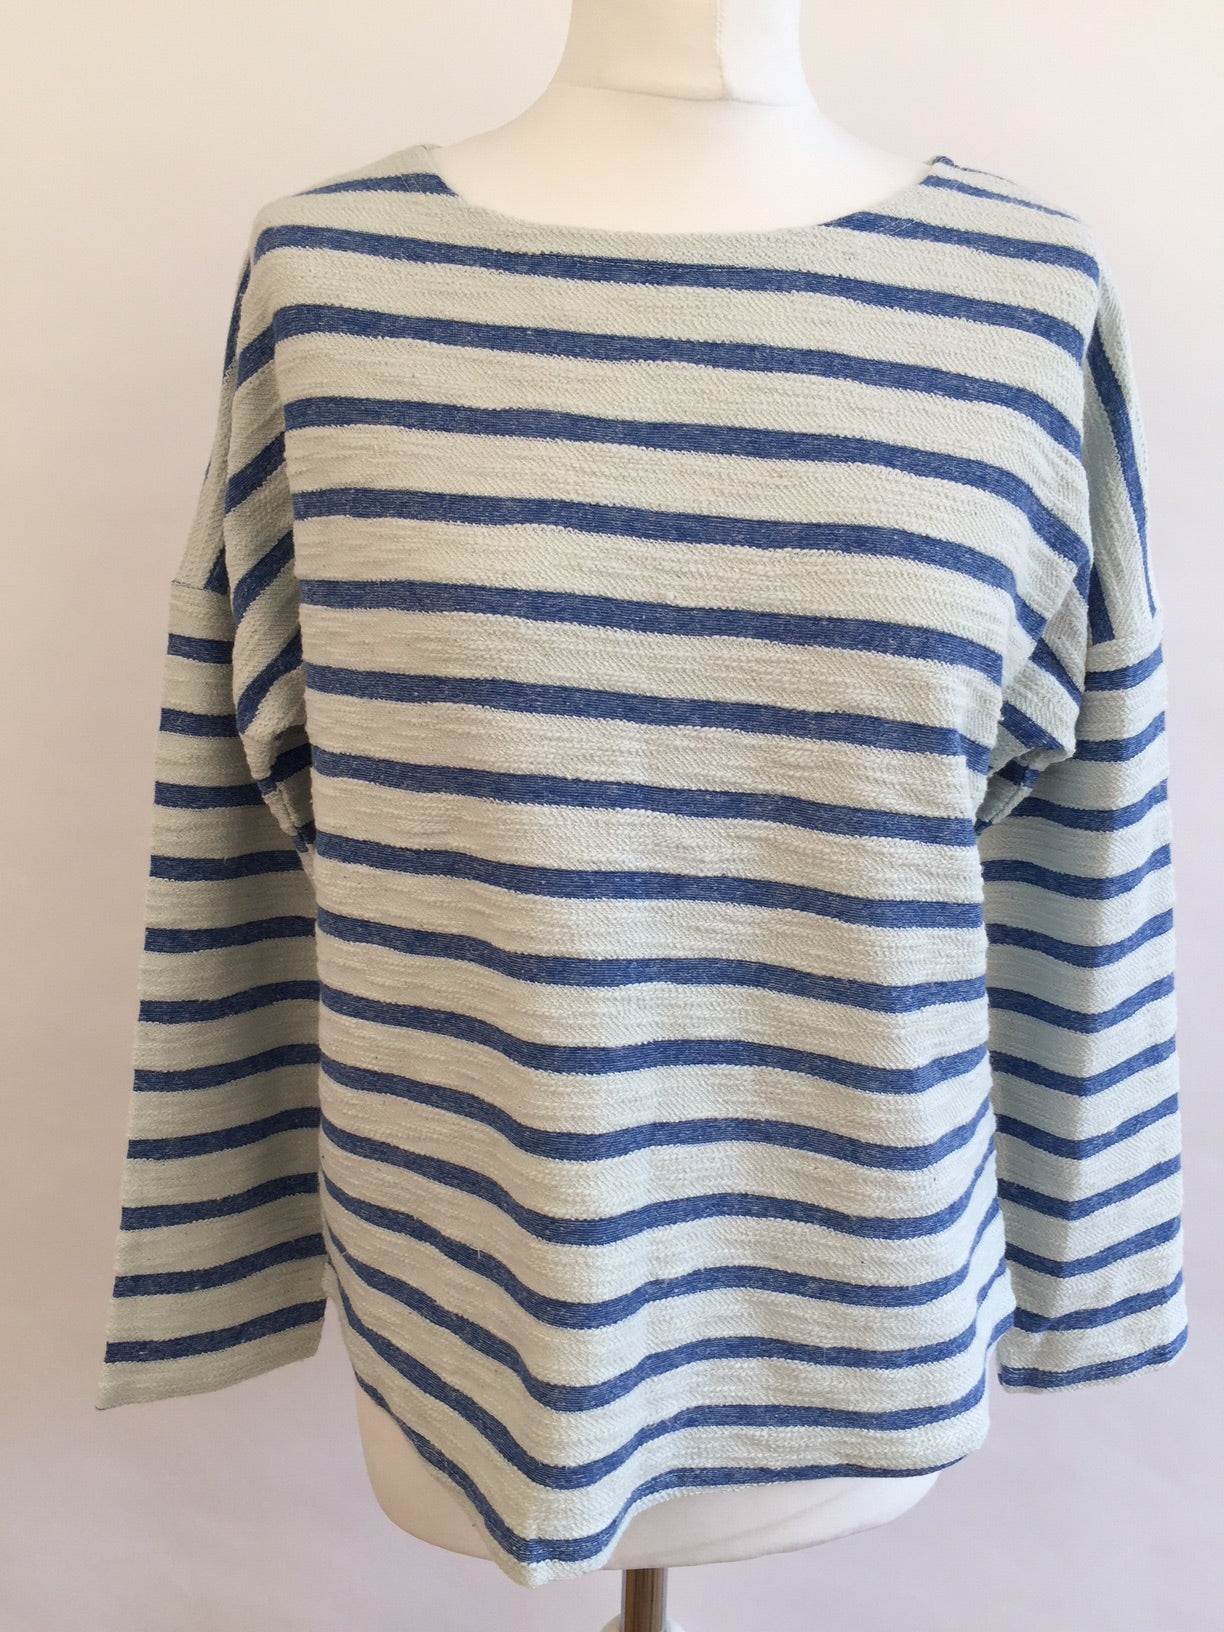 Long Sleeve Top - Blue Shades Stripe Fluffy